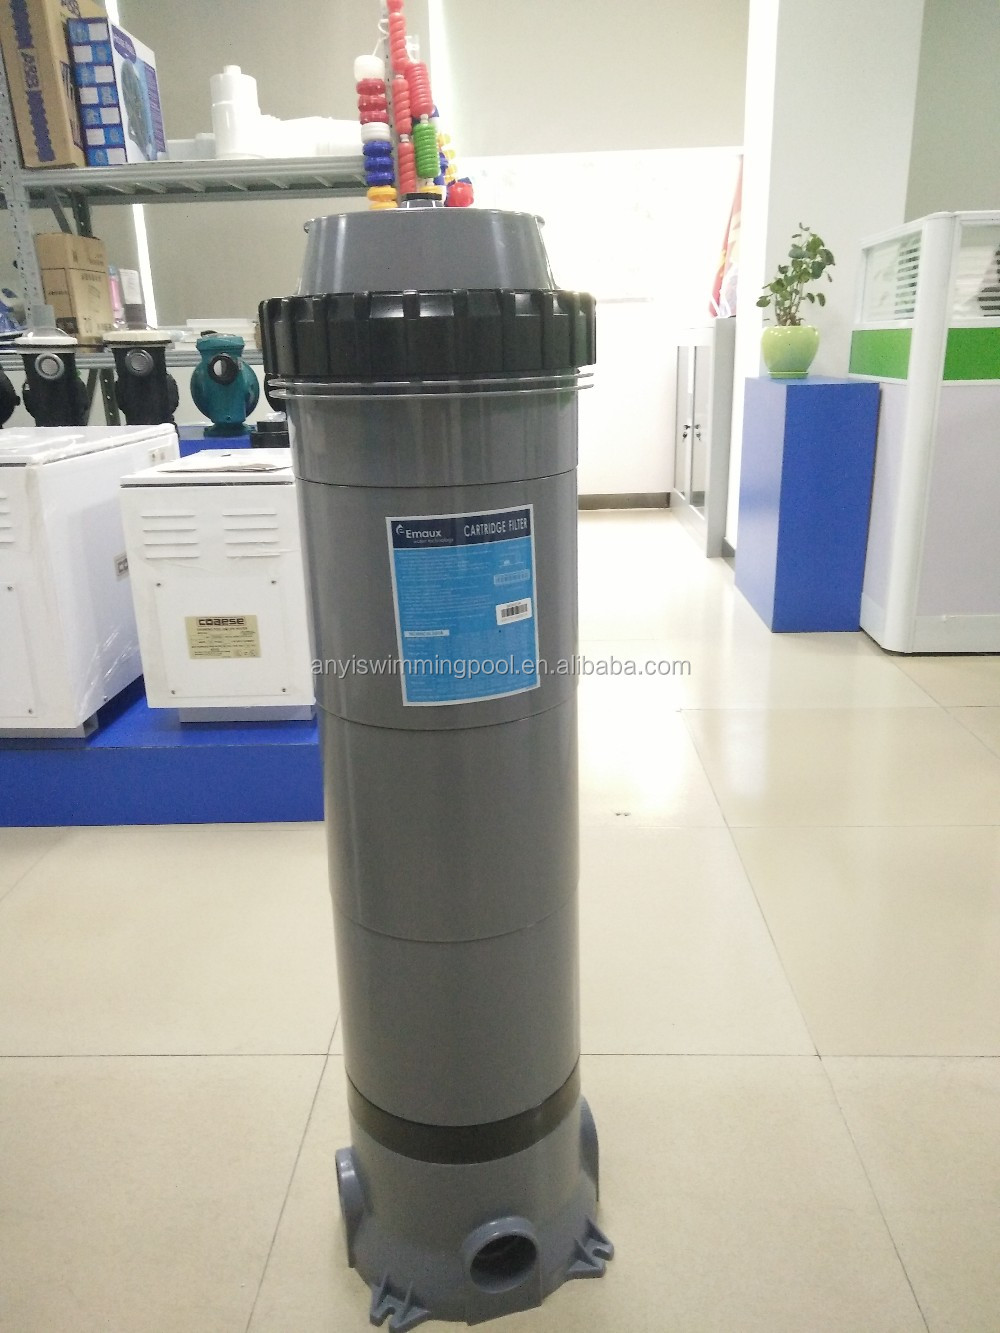 Grey Portable Swimming Pool Paper Cartridge Pool Filter